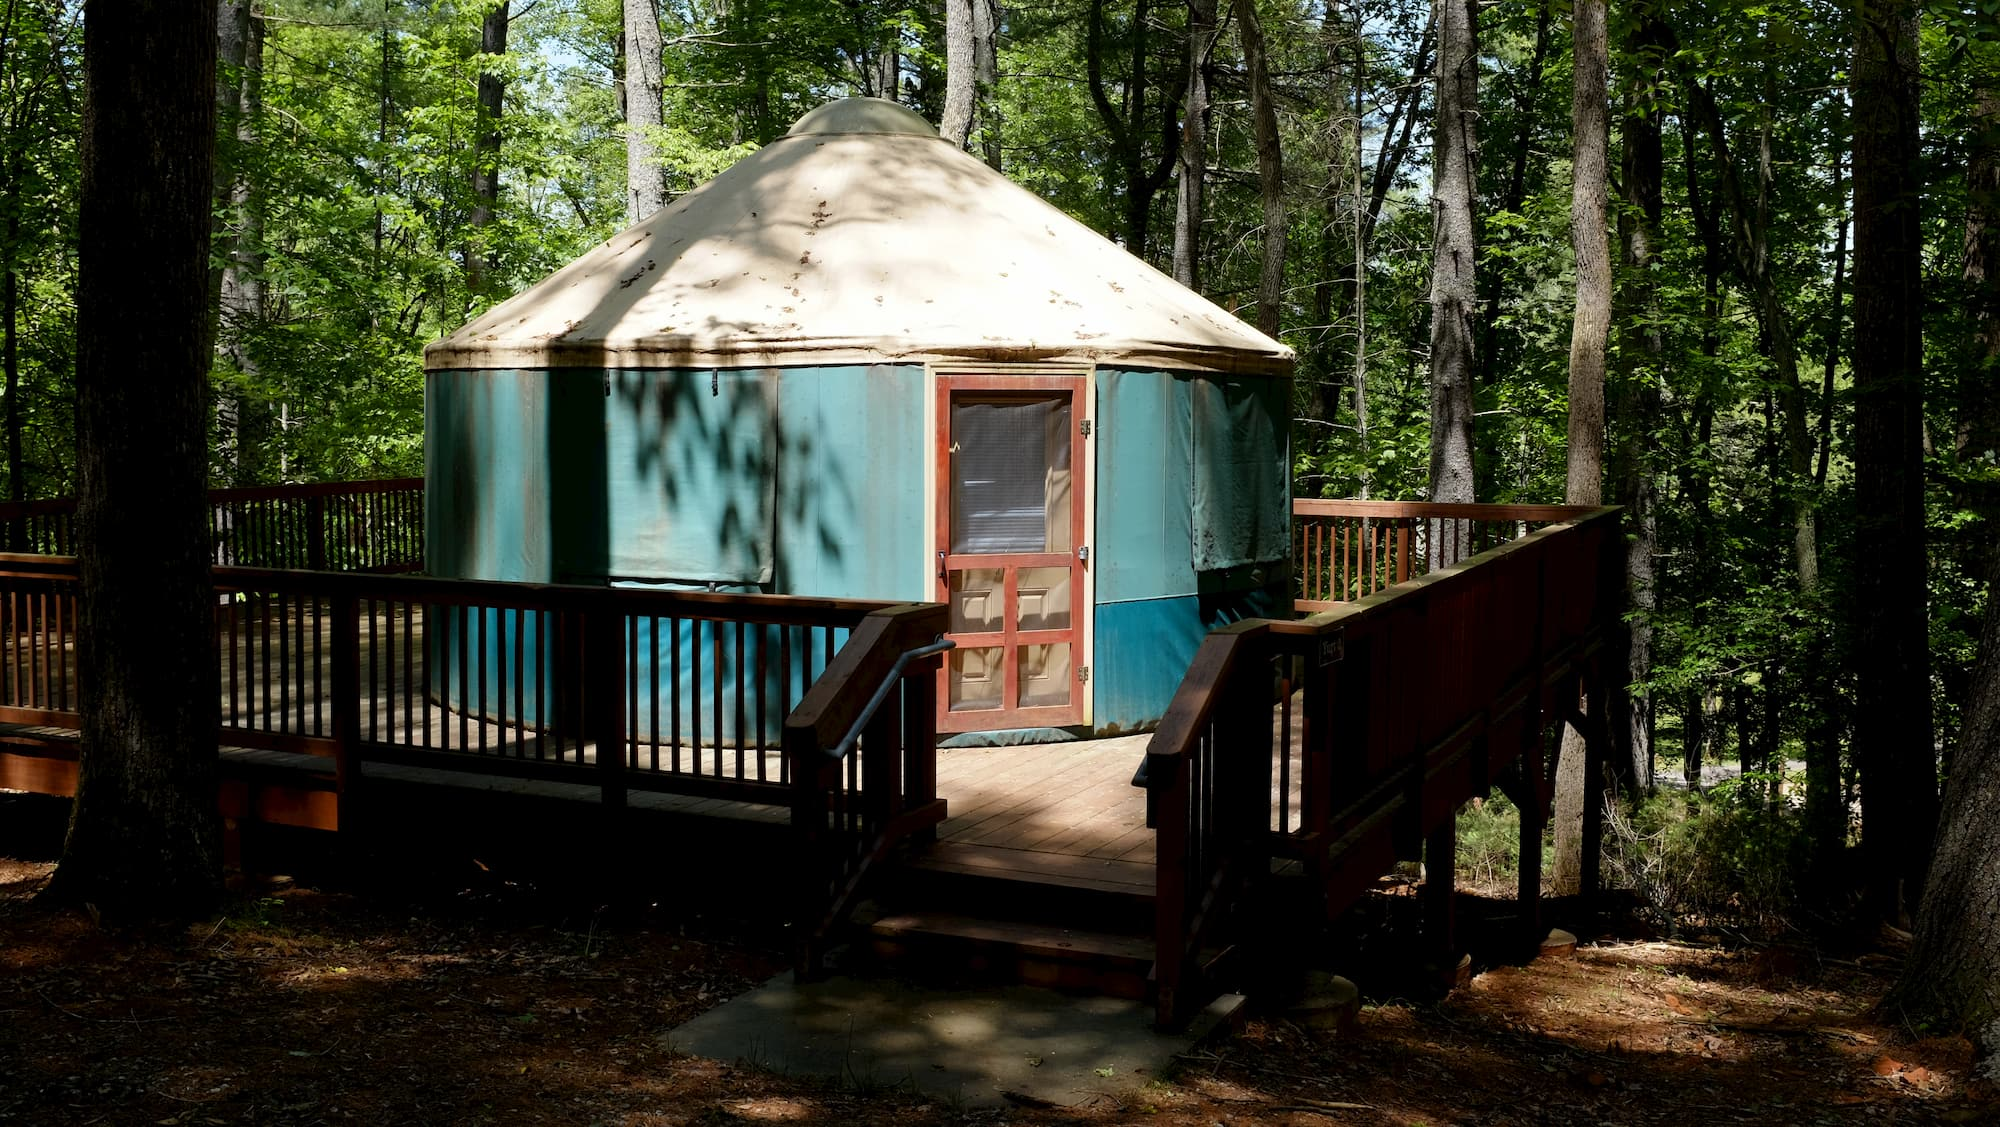 Yurt with porch in the middle of the forest.